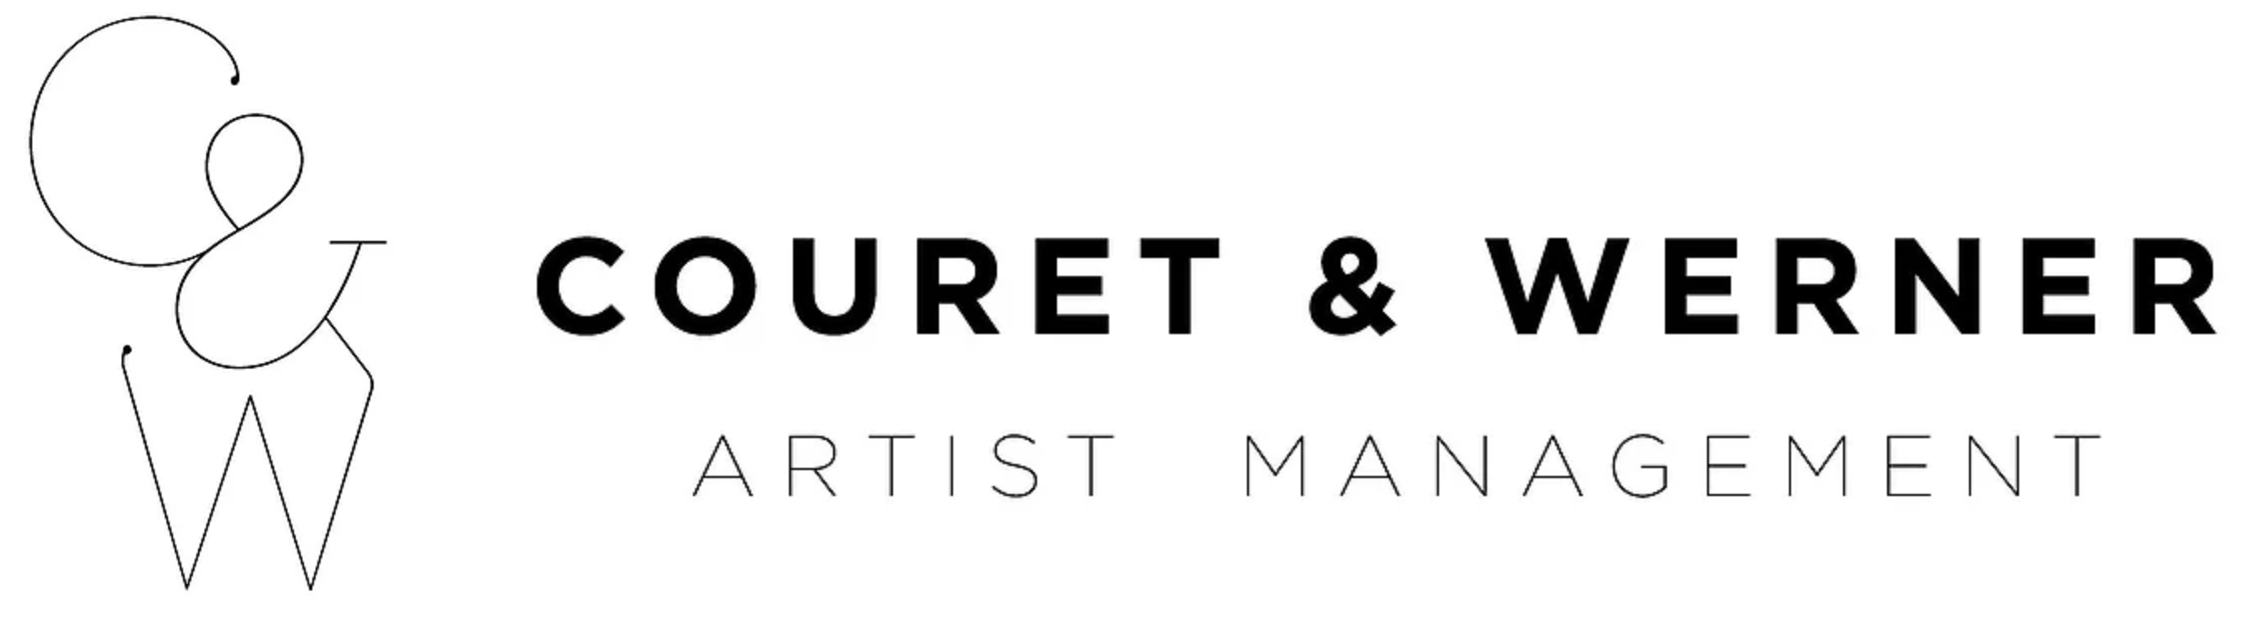 Couret & Werner Artist Management